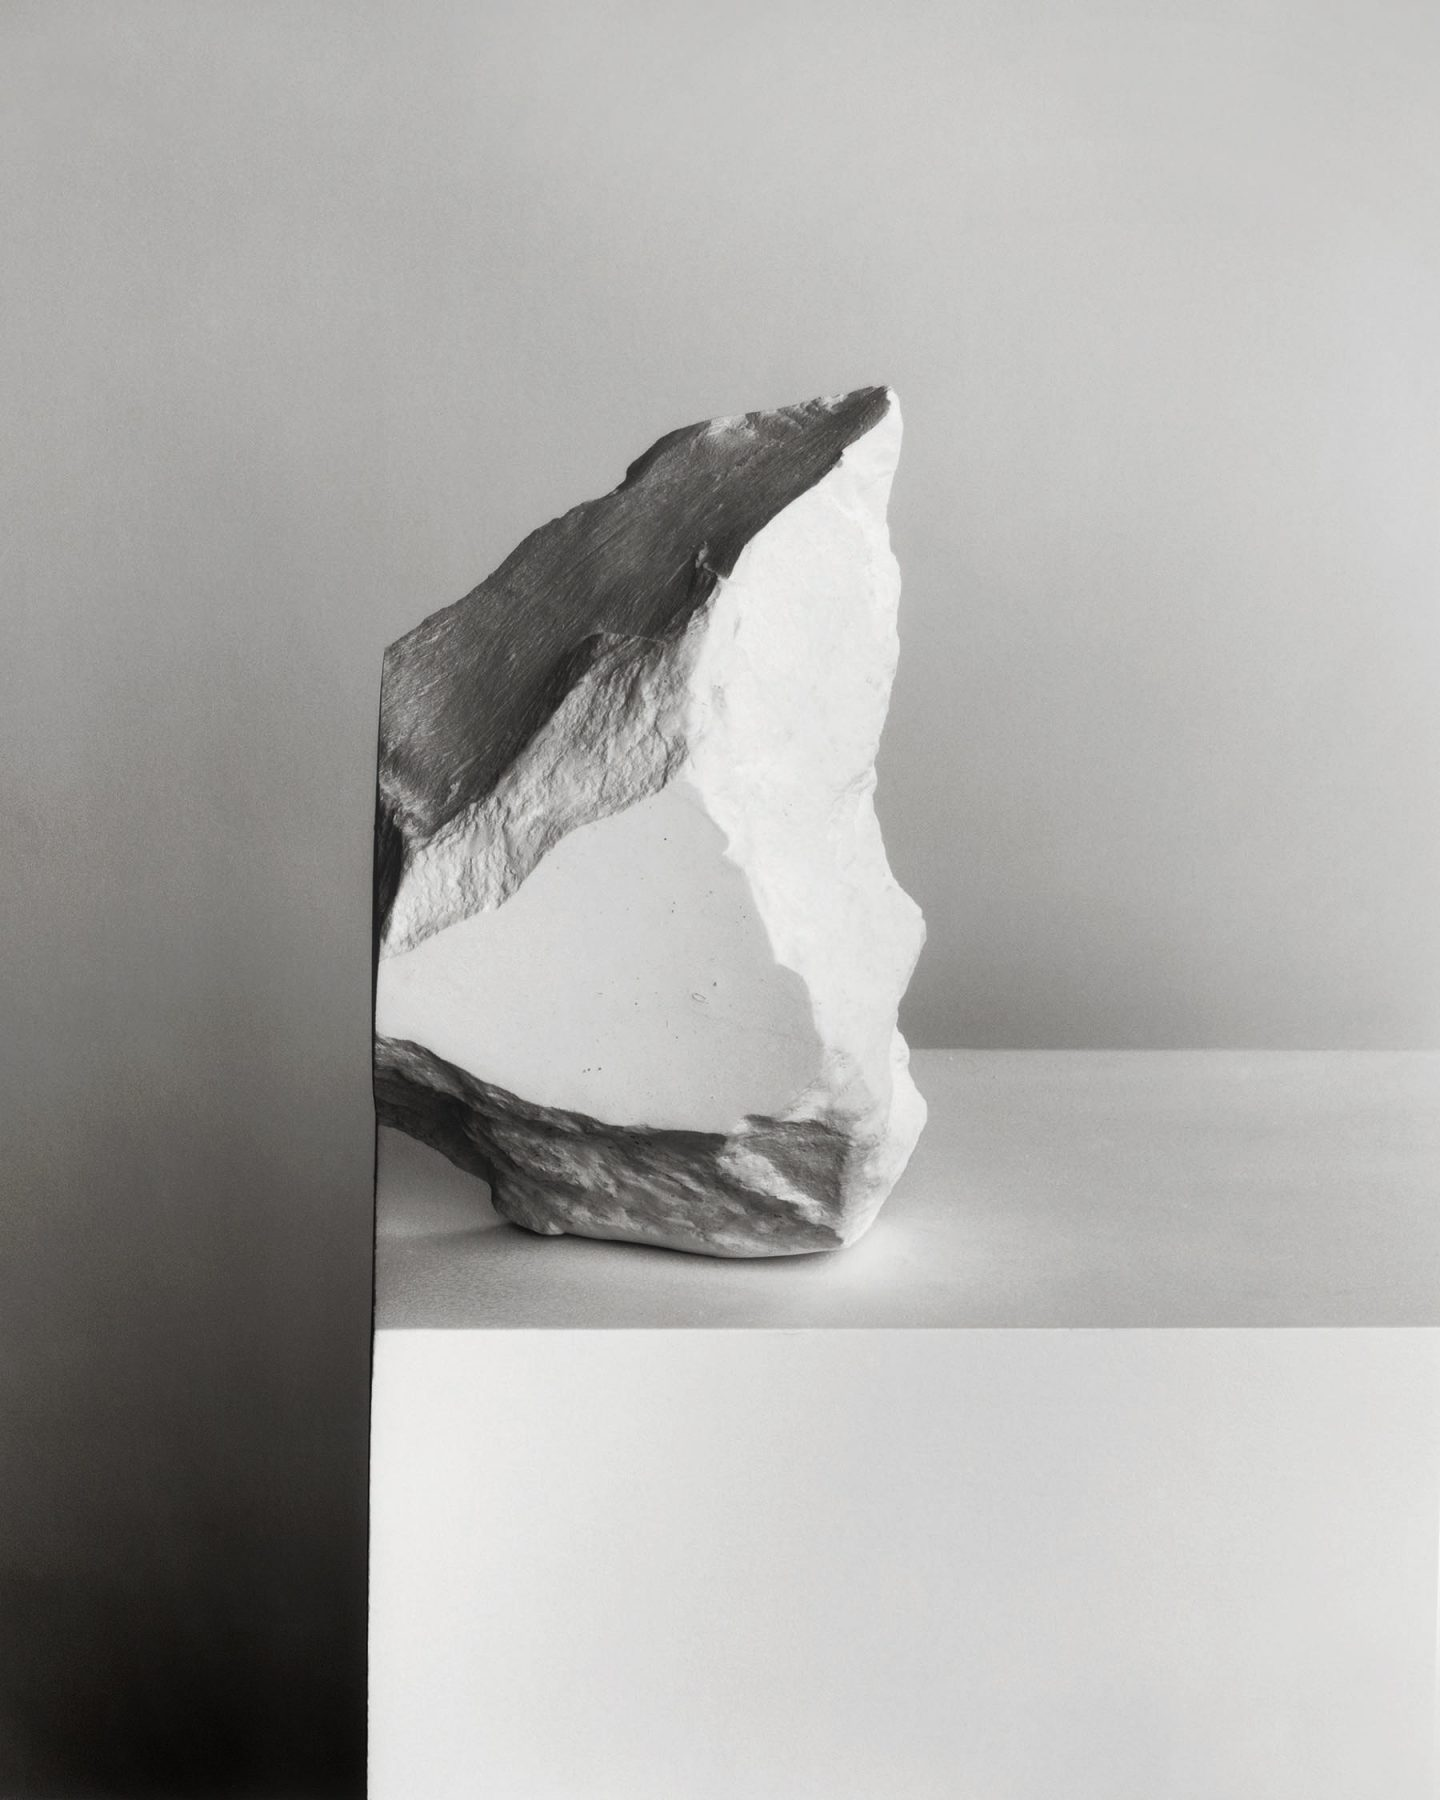 IGNANT-Photography-Darren-Harvey-Regan-The-Erratics-5.1